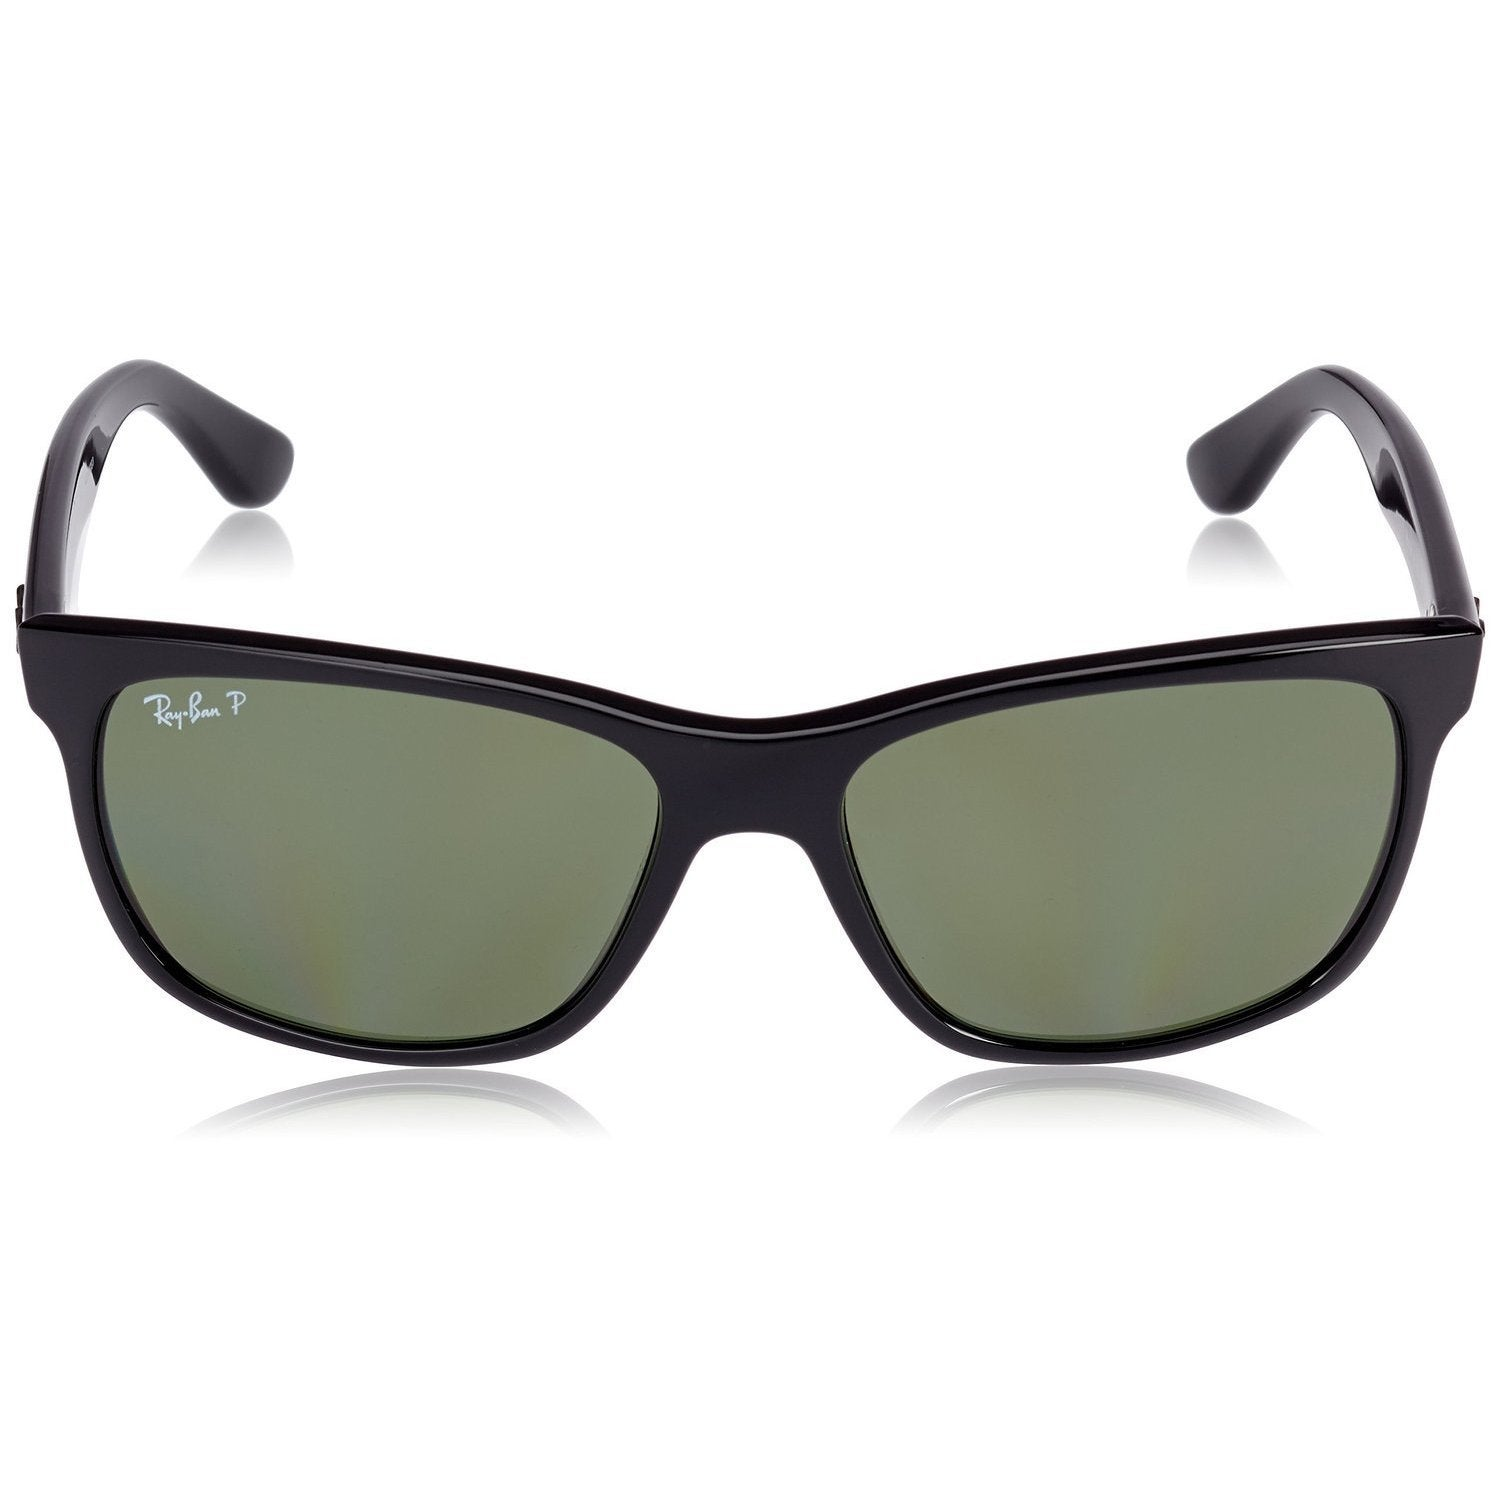 e7c92a6e1c Shop Ray-Ban RB4181 601 9A Black Frame Polarized Green 57mm Lens Sunglasses  - Free Shipping Today - Overstock - 11897486